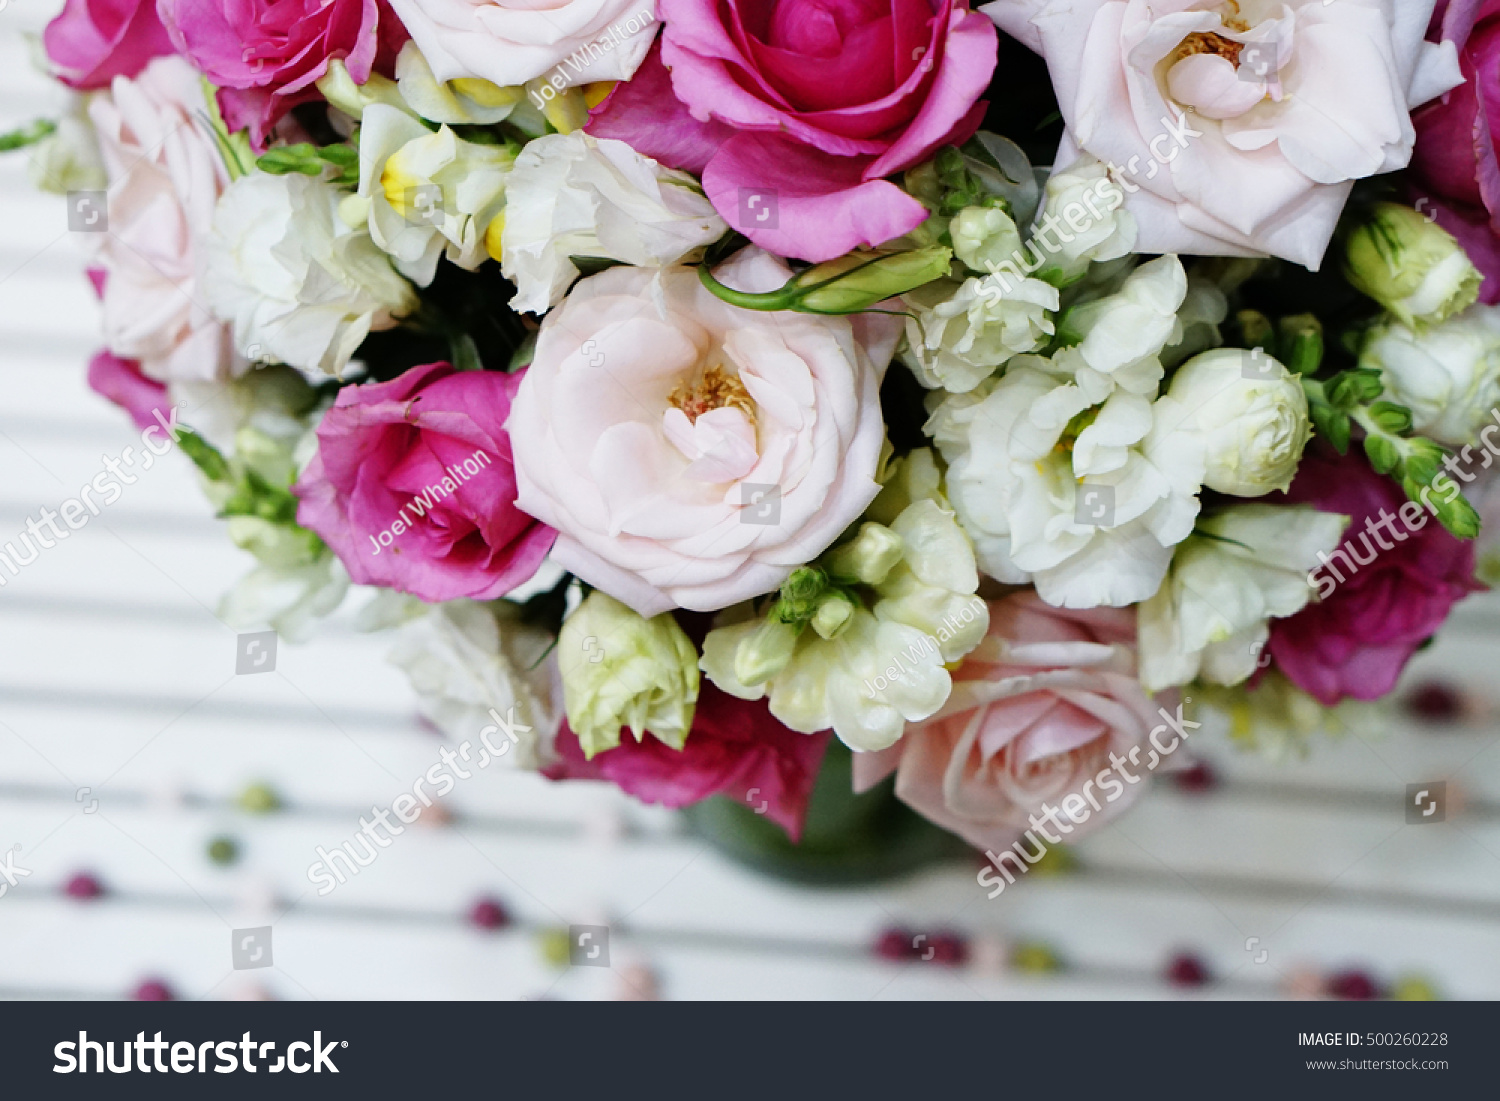 A Bunch Of Pink Roses And White Roses Flower Design Flower